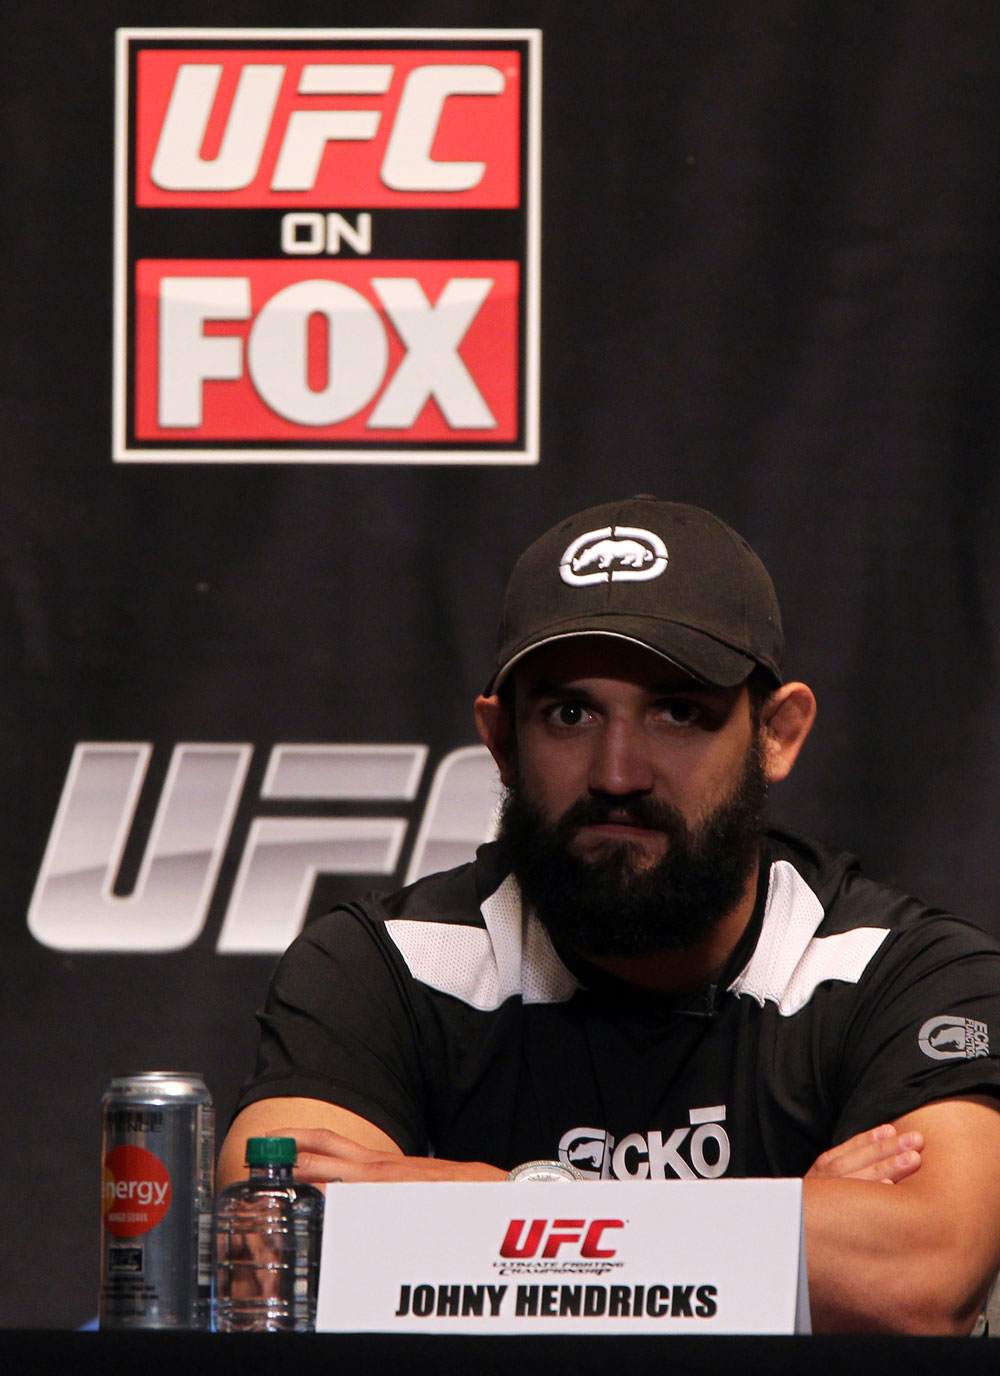 NEW YORK, NY - MAY 03:  Johny Hendricks attends the UFC on FOX pre-fight press conference at Beacon Theatre on May 3, 2012 in New York City.  (Photo by Josh Hedges/Zuffa LLC/Zuffa LLC via Getty Images)